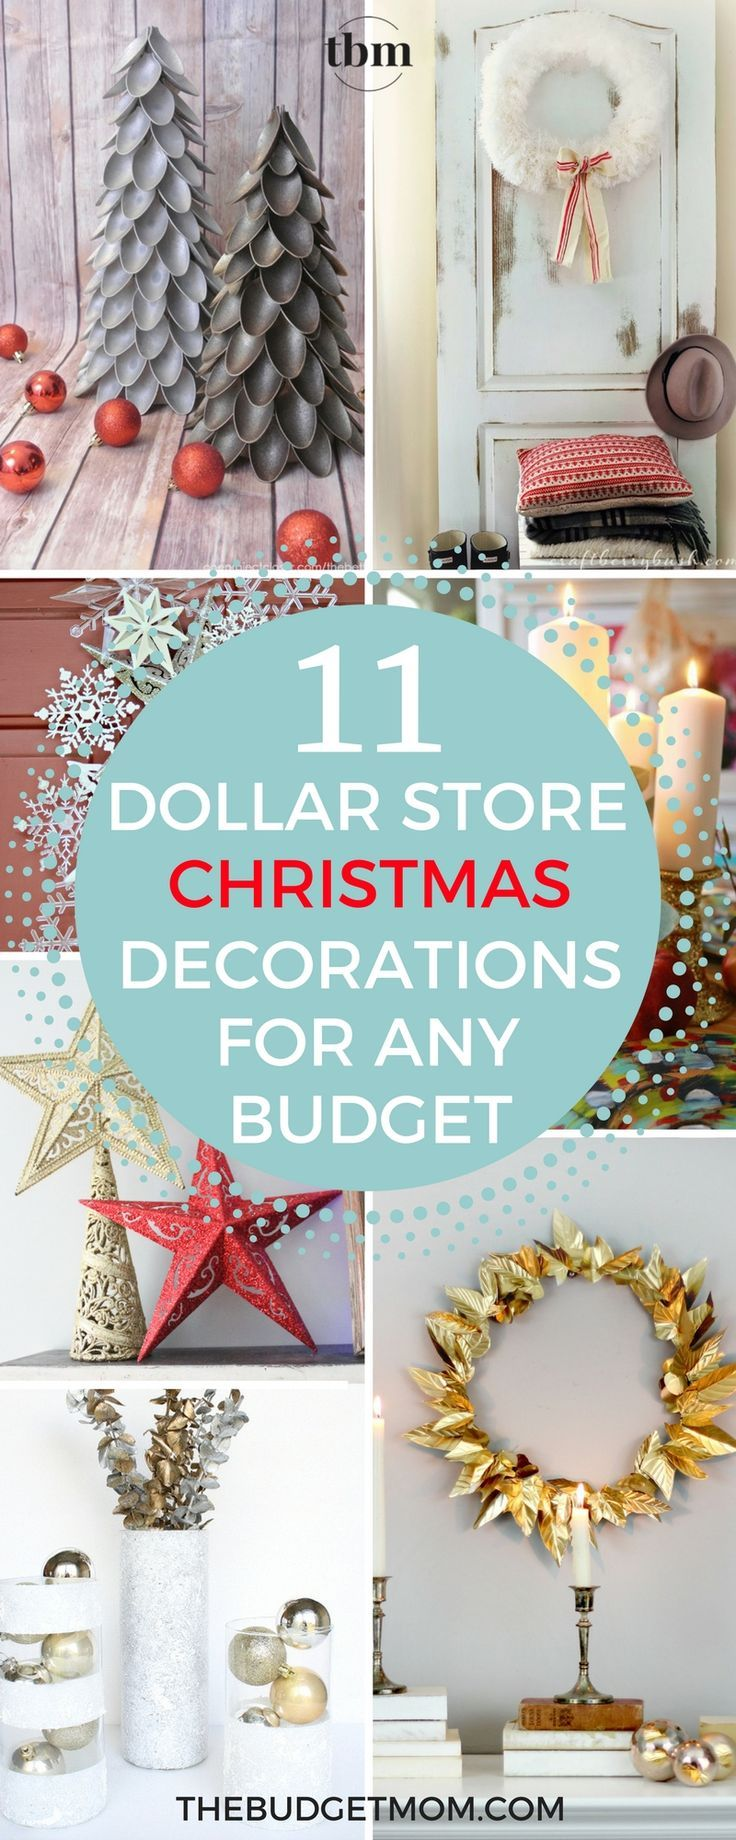 i absolutely love all of these dollar store christmas ideas the gold wreath is my absolute favorite i have a very small christmas budget this year and